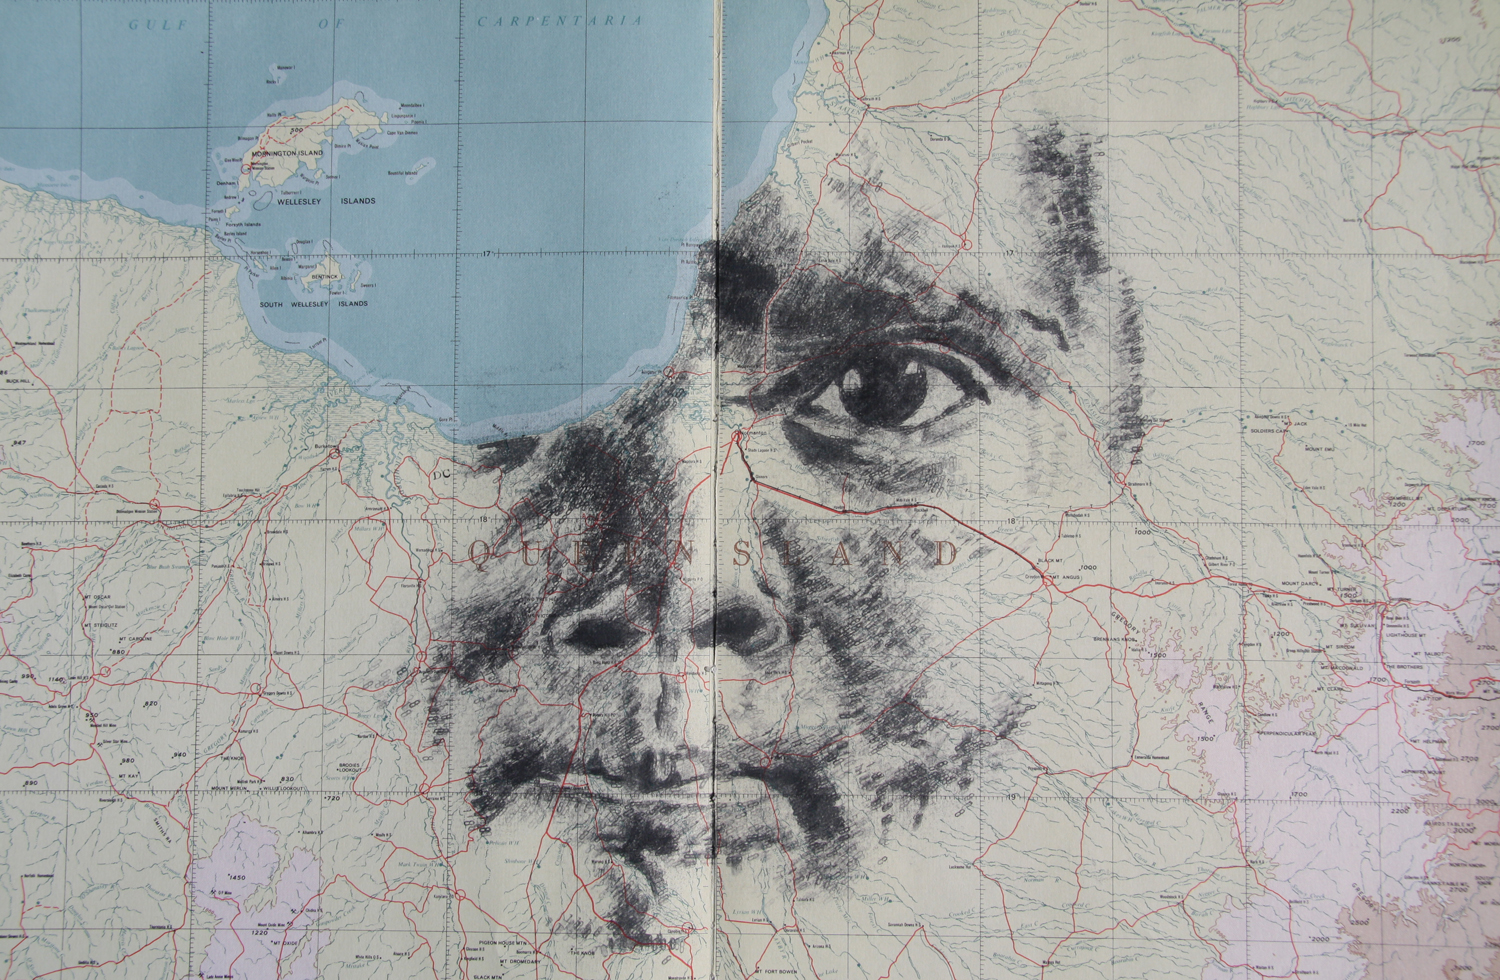 'Yulparija 18', 2013, (SOLD), date stamp and ink on map of Queensland, 52 x 38 cm